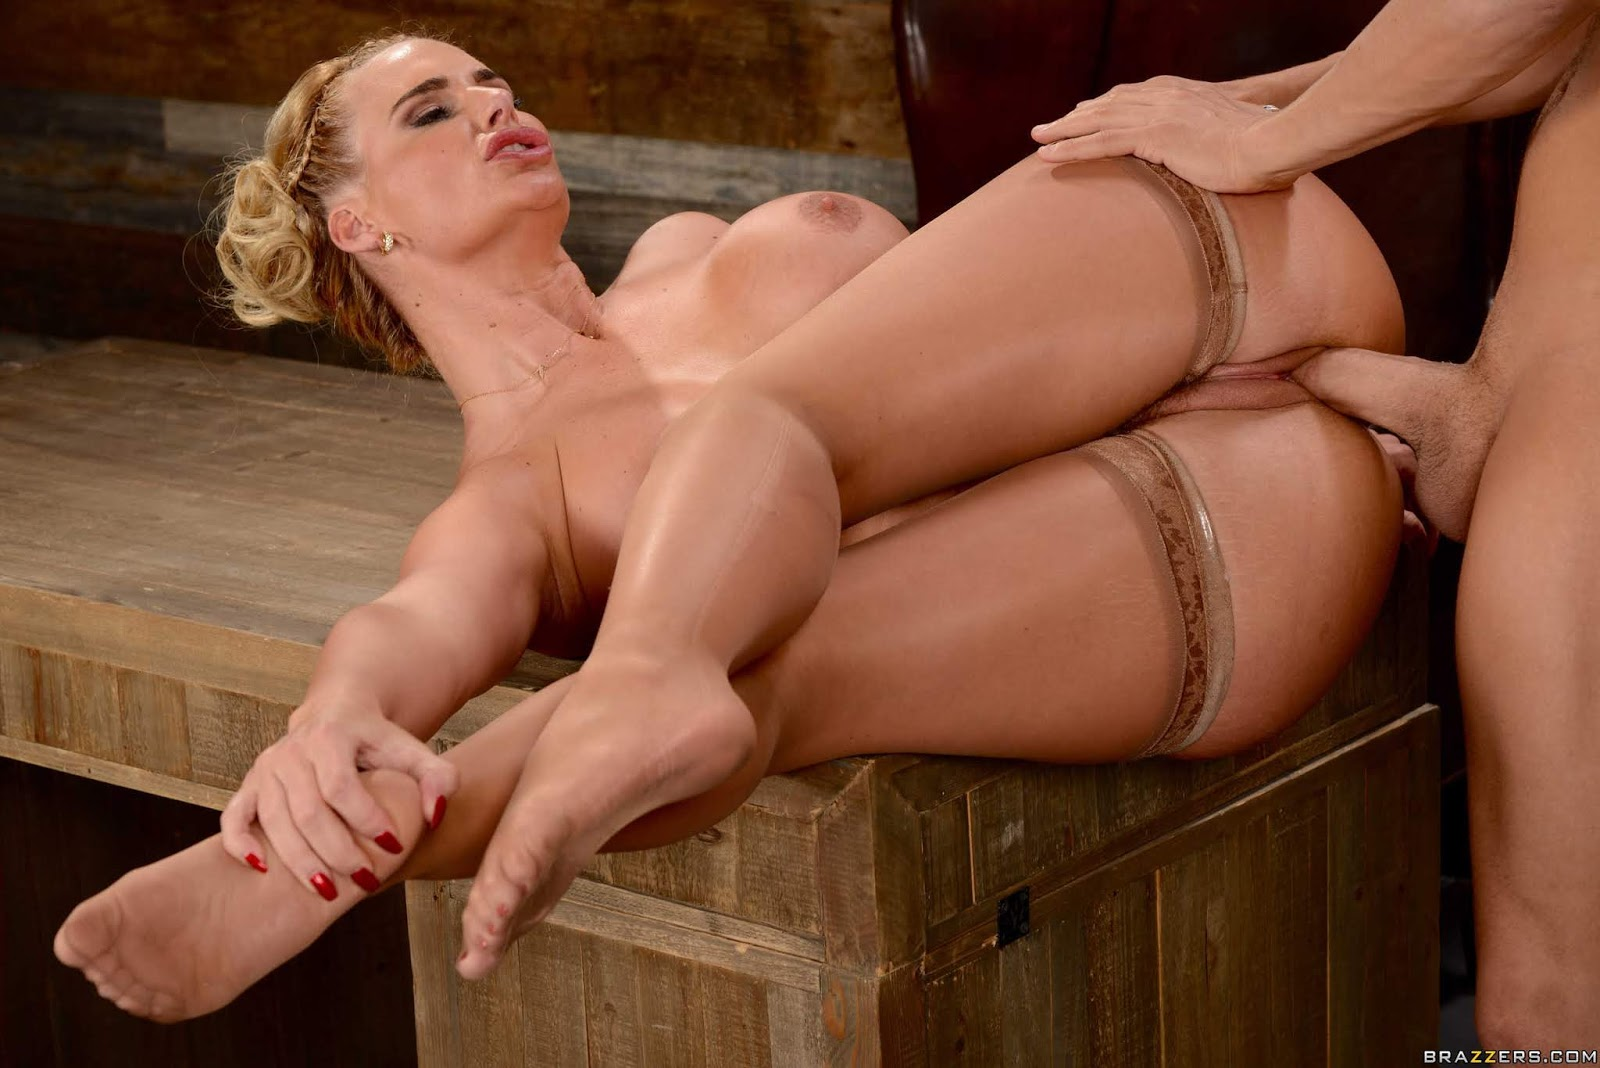 Phoenix Marie : Breaking And Entering And Insertion ## BRAZZERSl6vw9iuypd.jpg